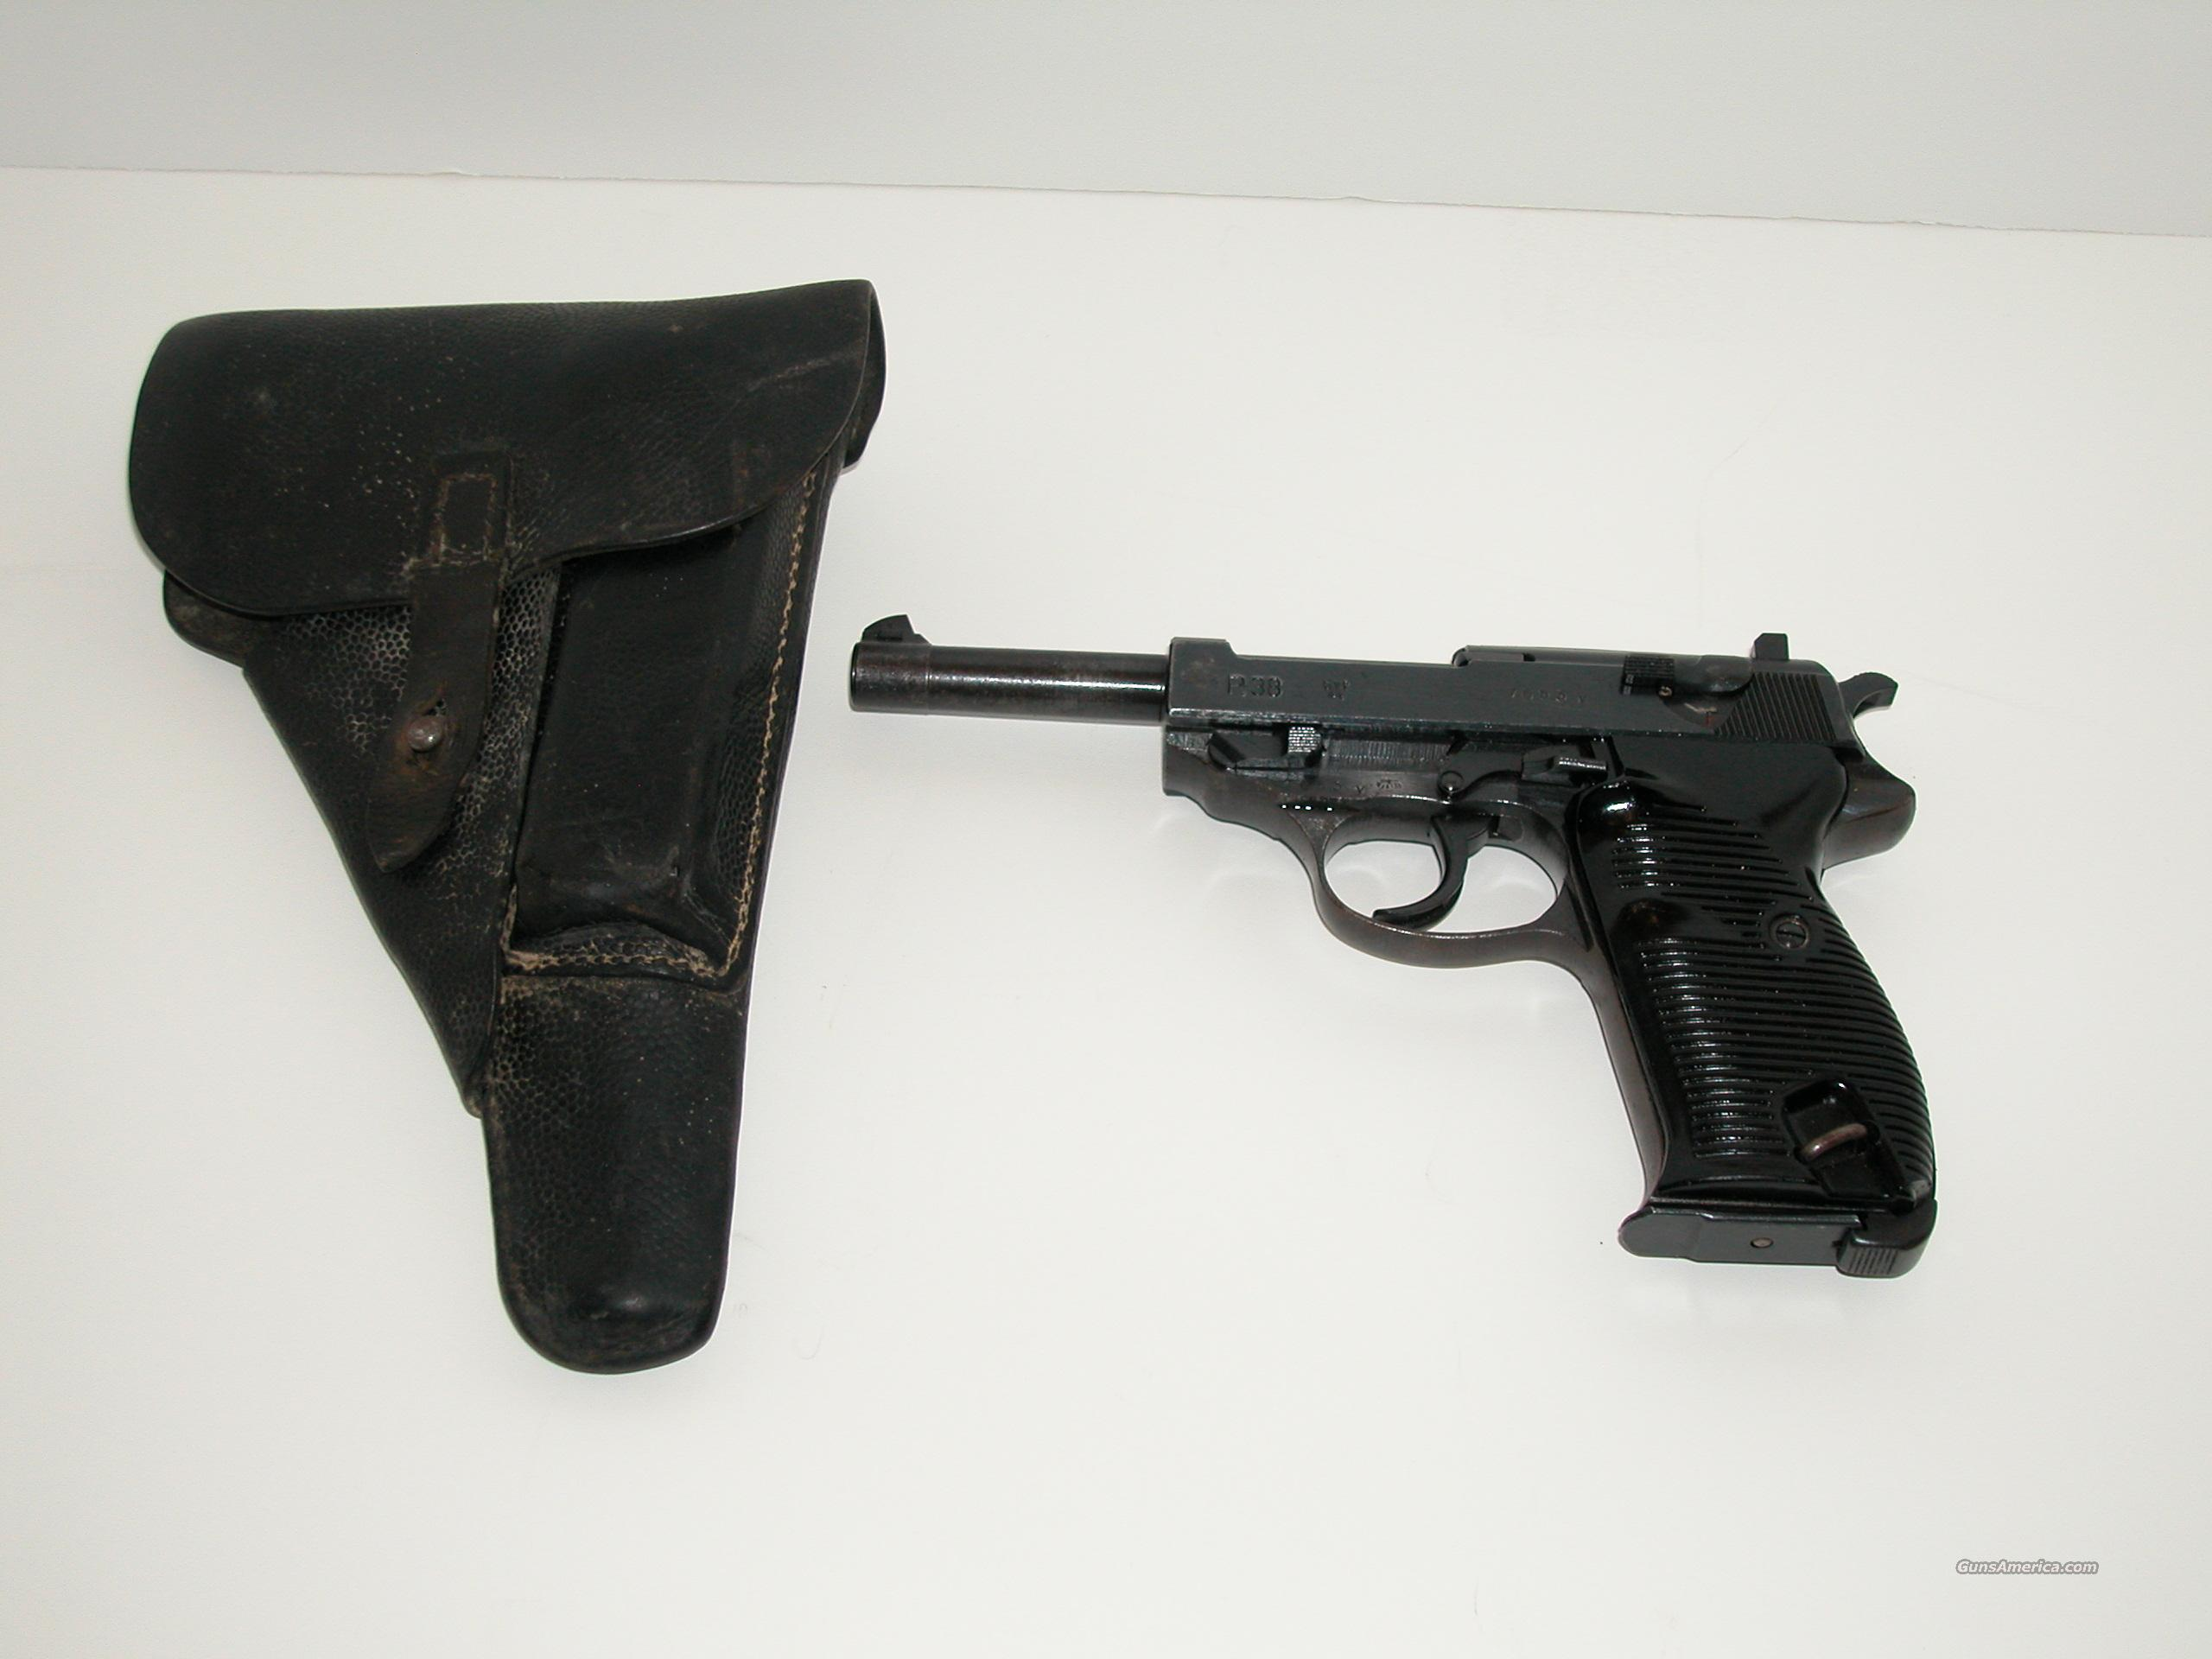 Walther P38 byf 44 9mm Holster Match # Nazi proofs  Guns > Pistols > Walther Pistols > Post WWII > P38